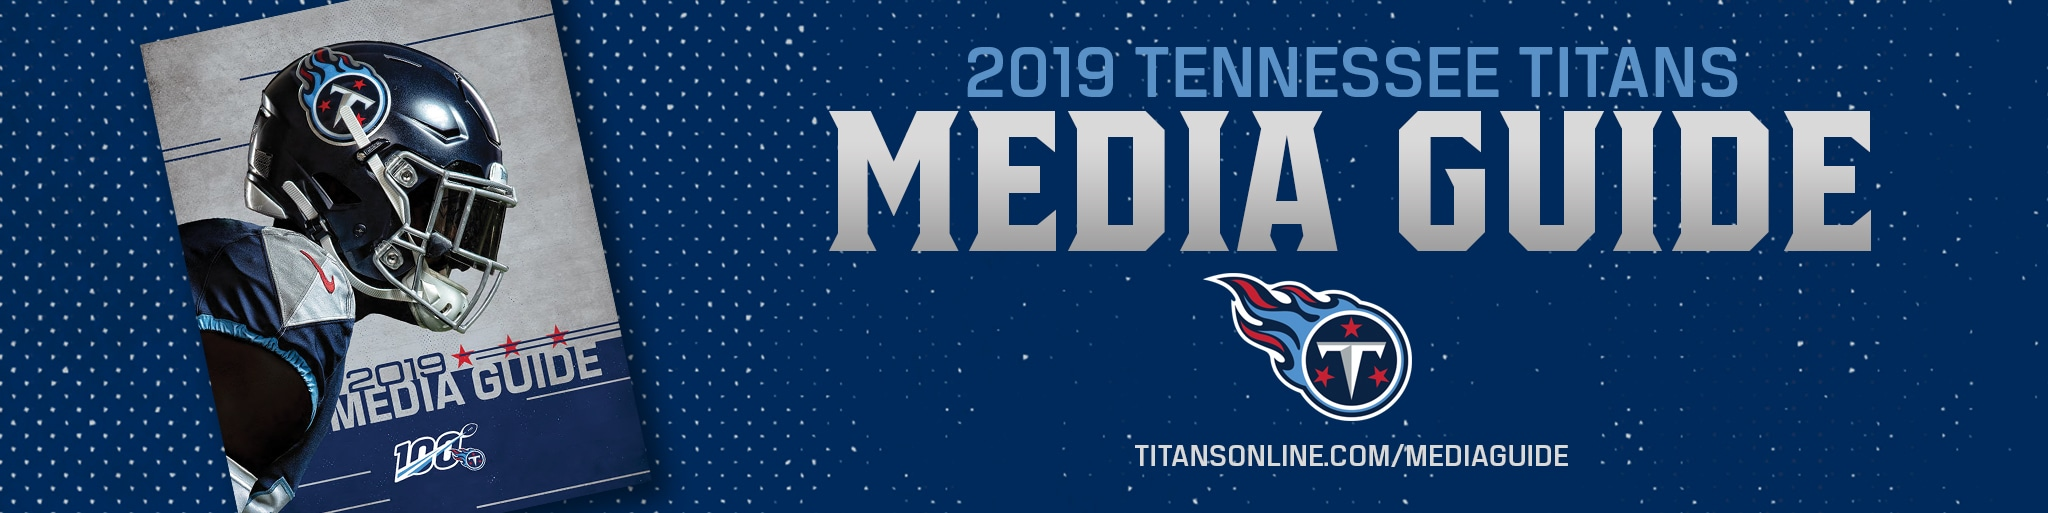 Tennessee Titans 2019 Media Guide